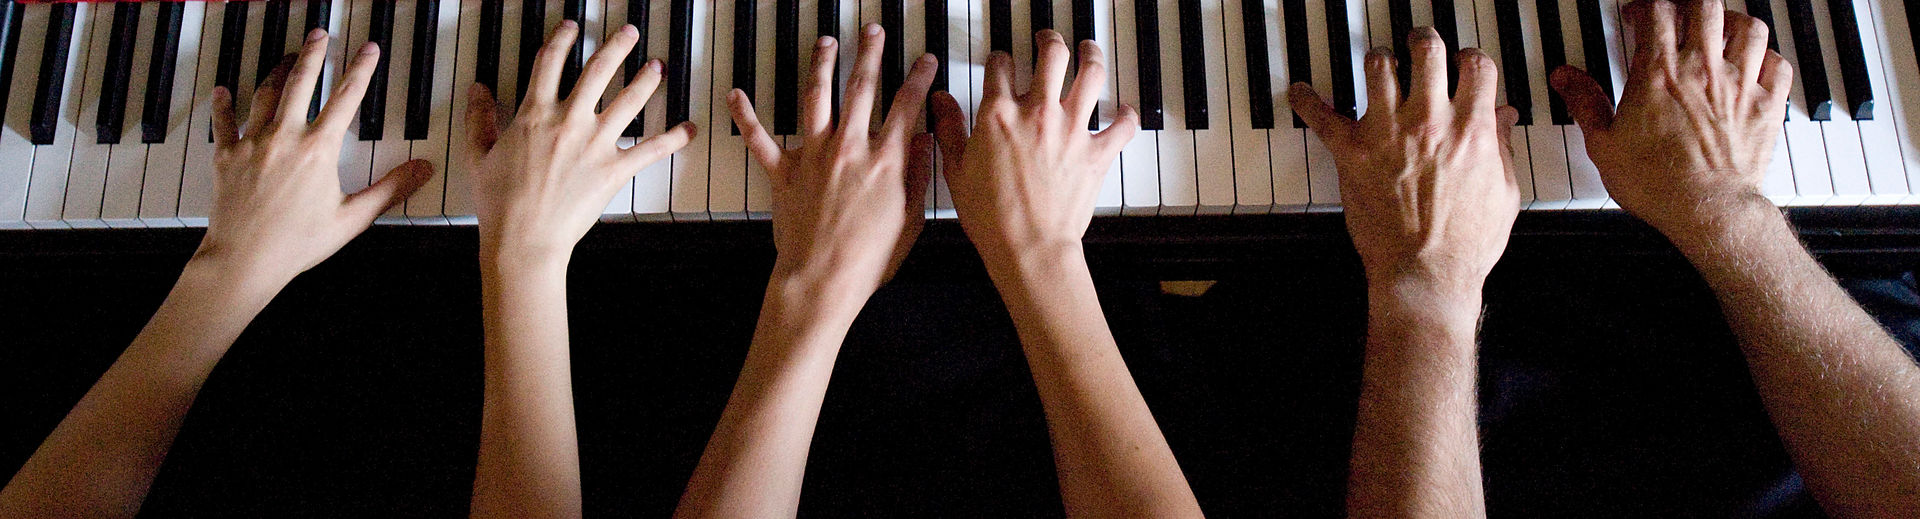 Three pairs of hands playing the piano